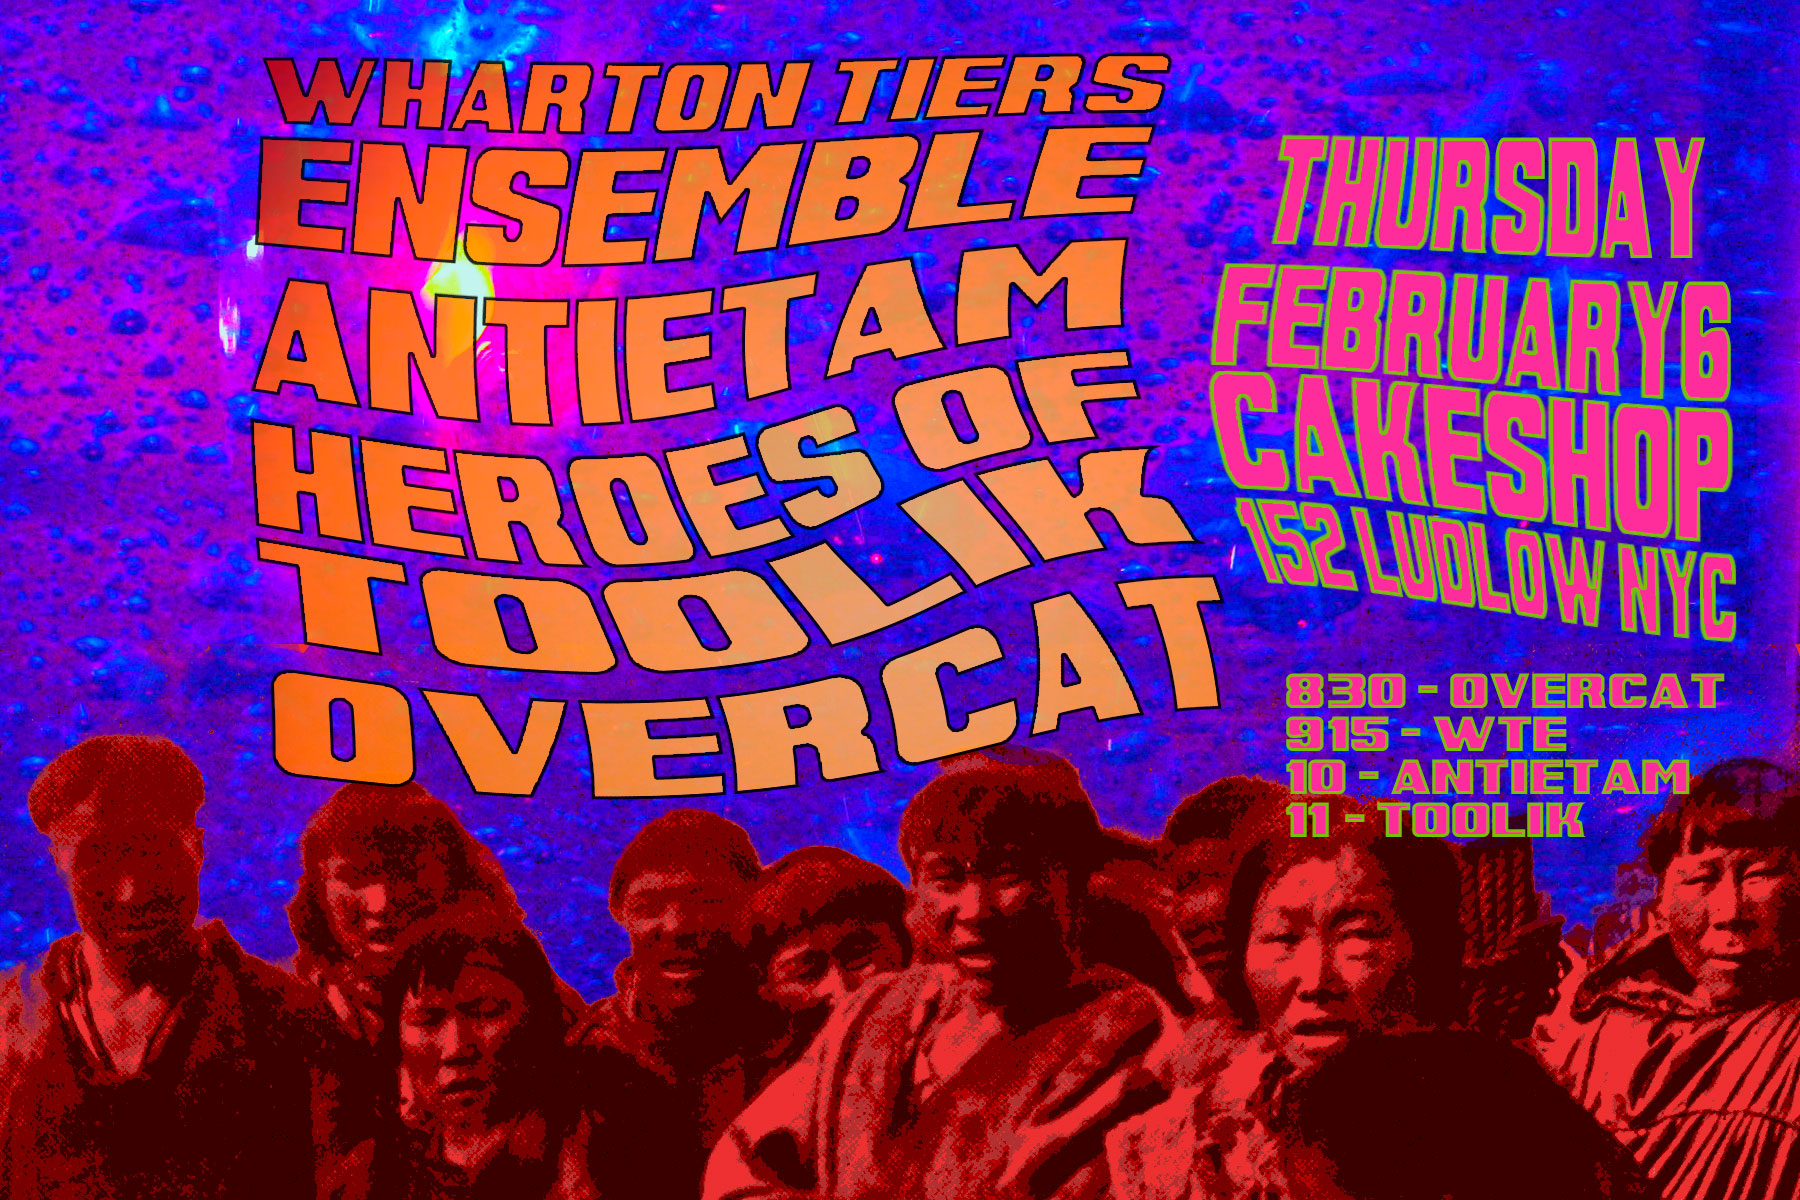 Wharton Tiers Ensemble at Cakeshop February 6, 2014